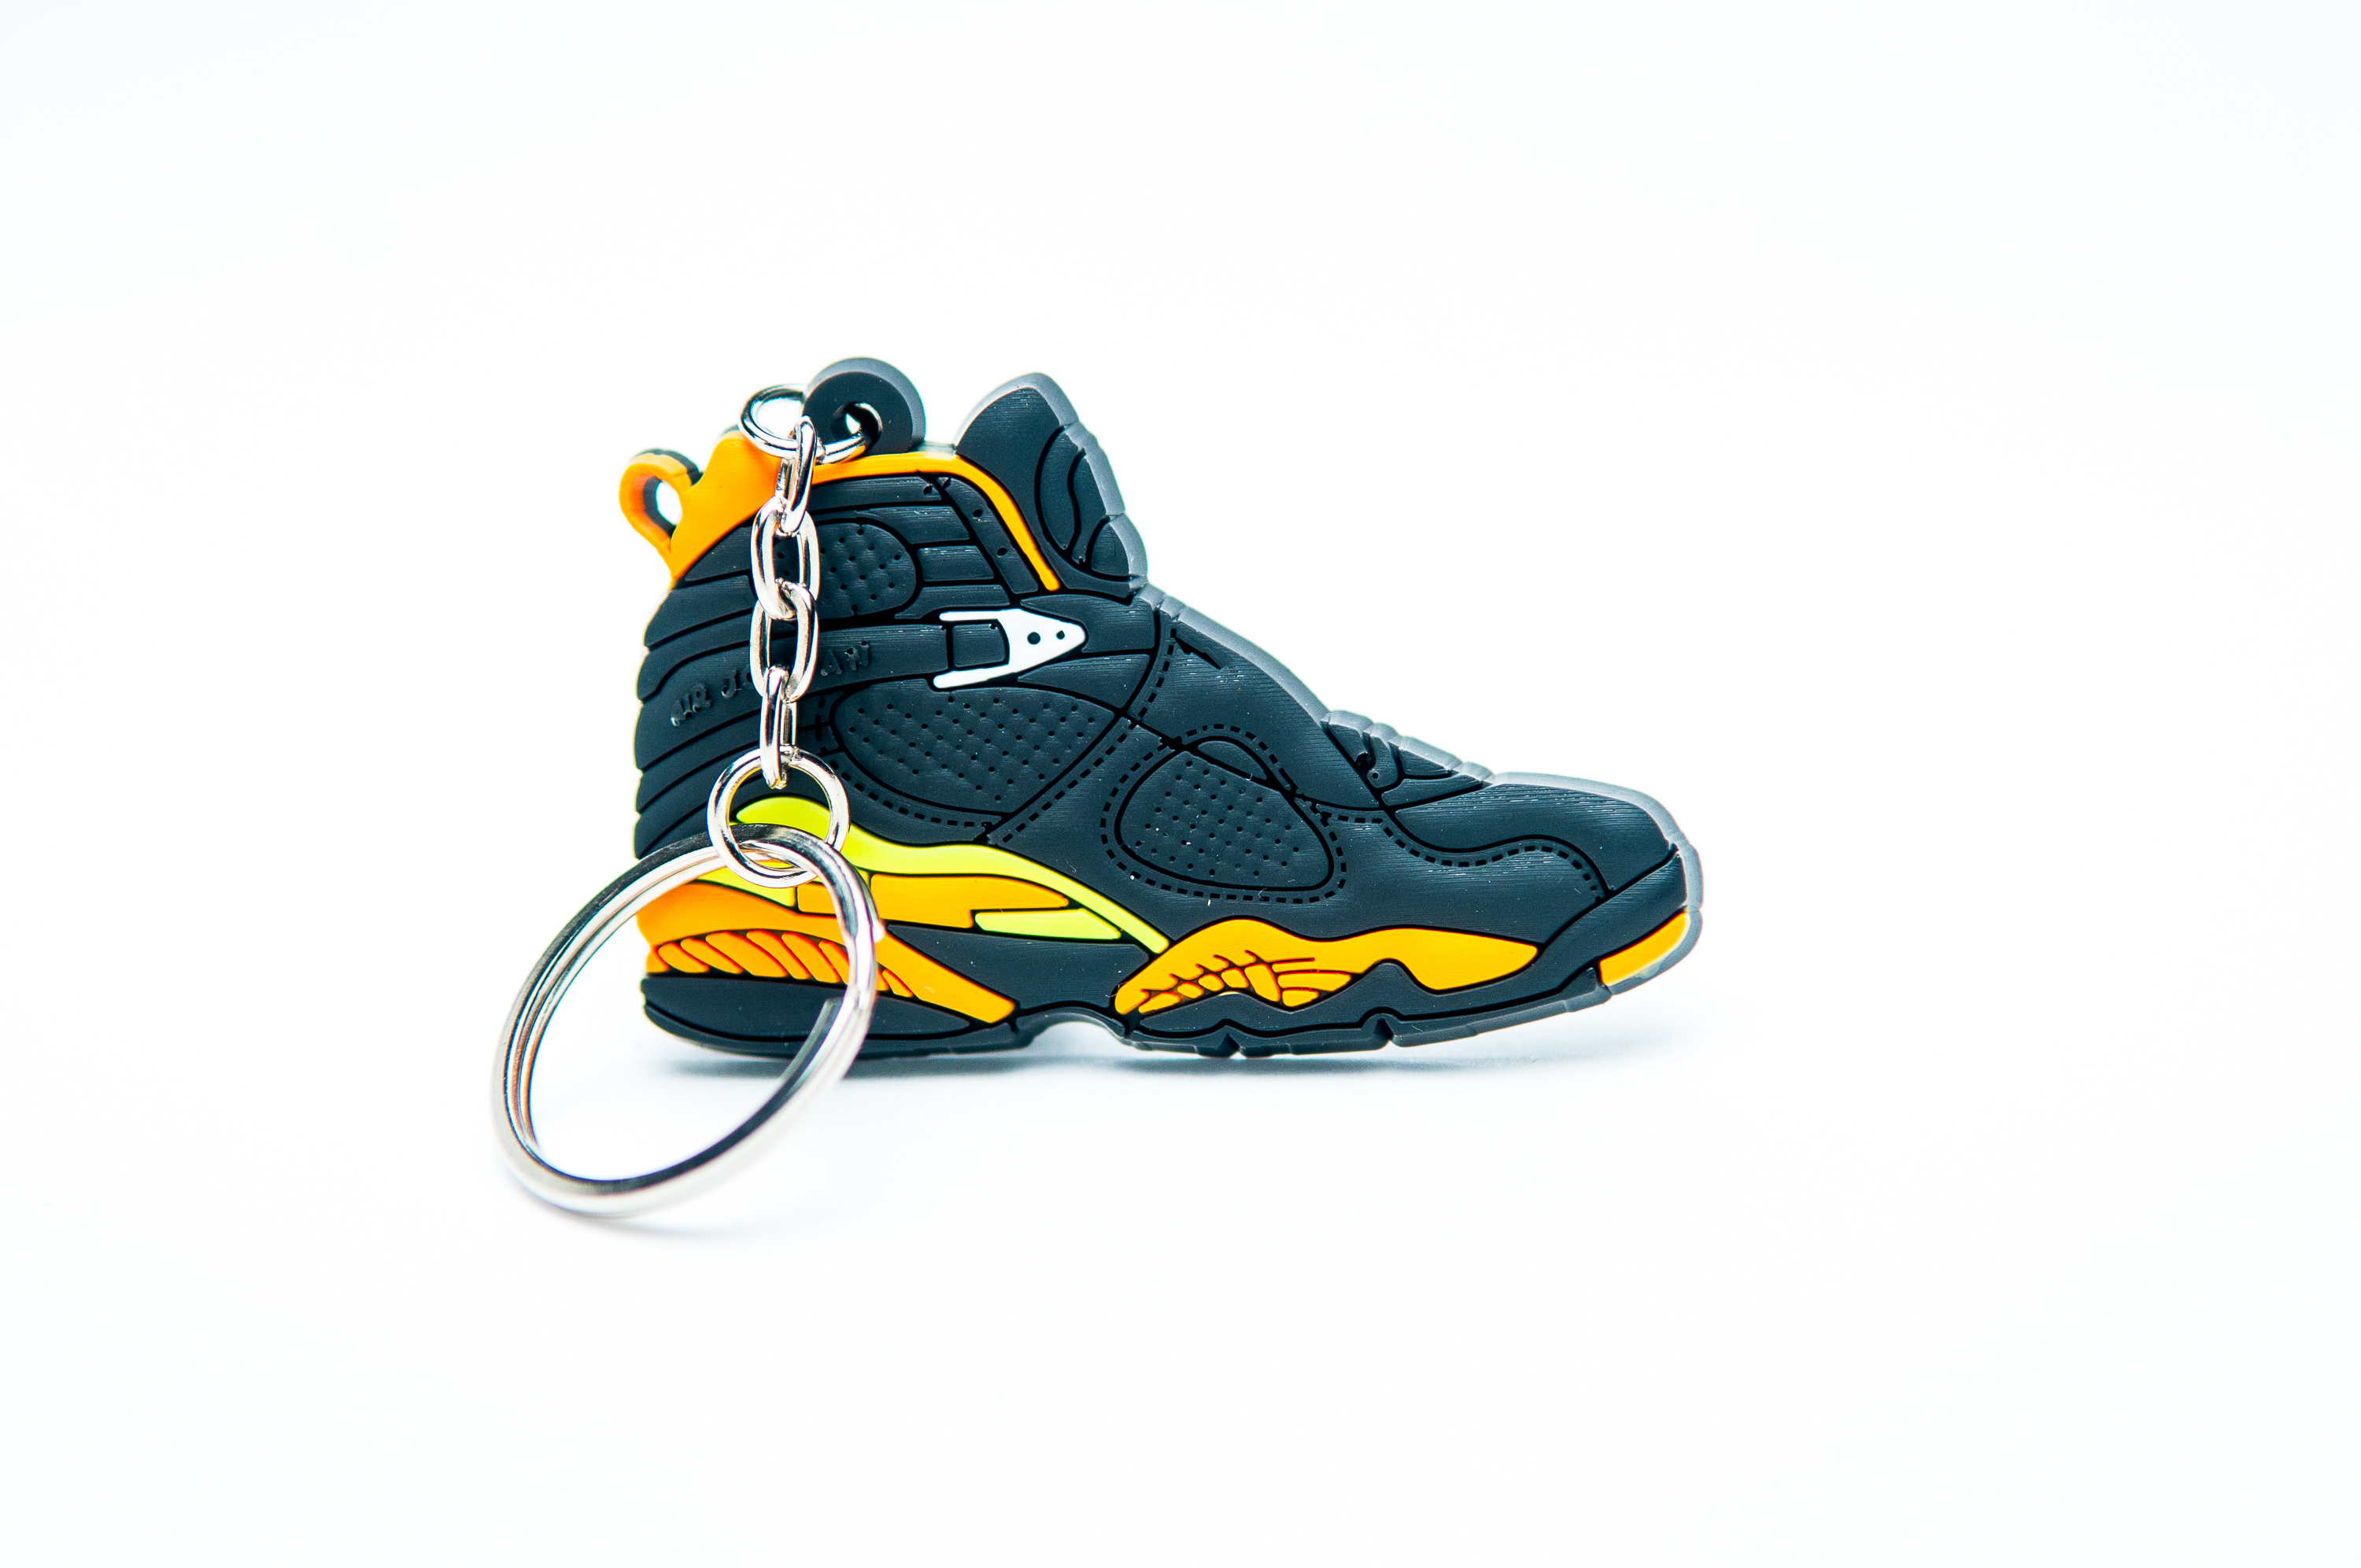 7e829e8159a Nike Air Jordan 8 Retro Black Yellow - Kool keyringsKool keyrings